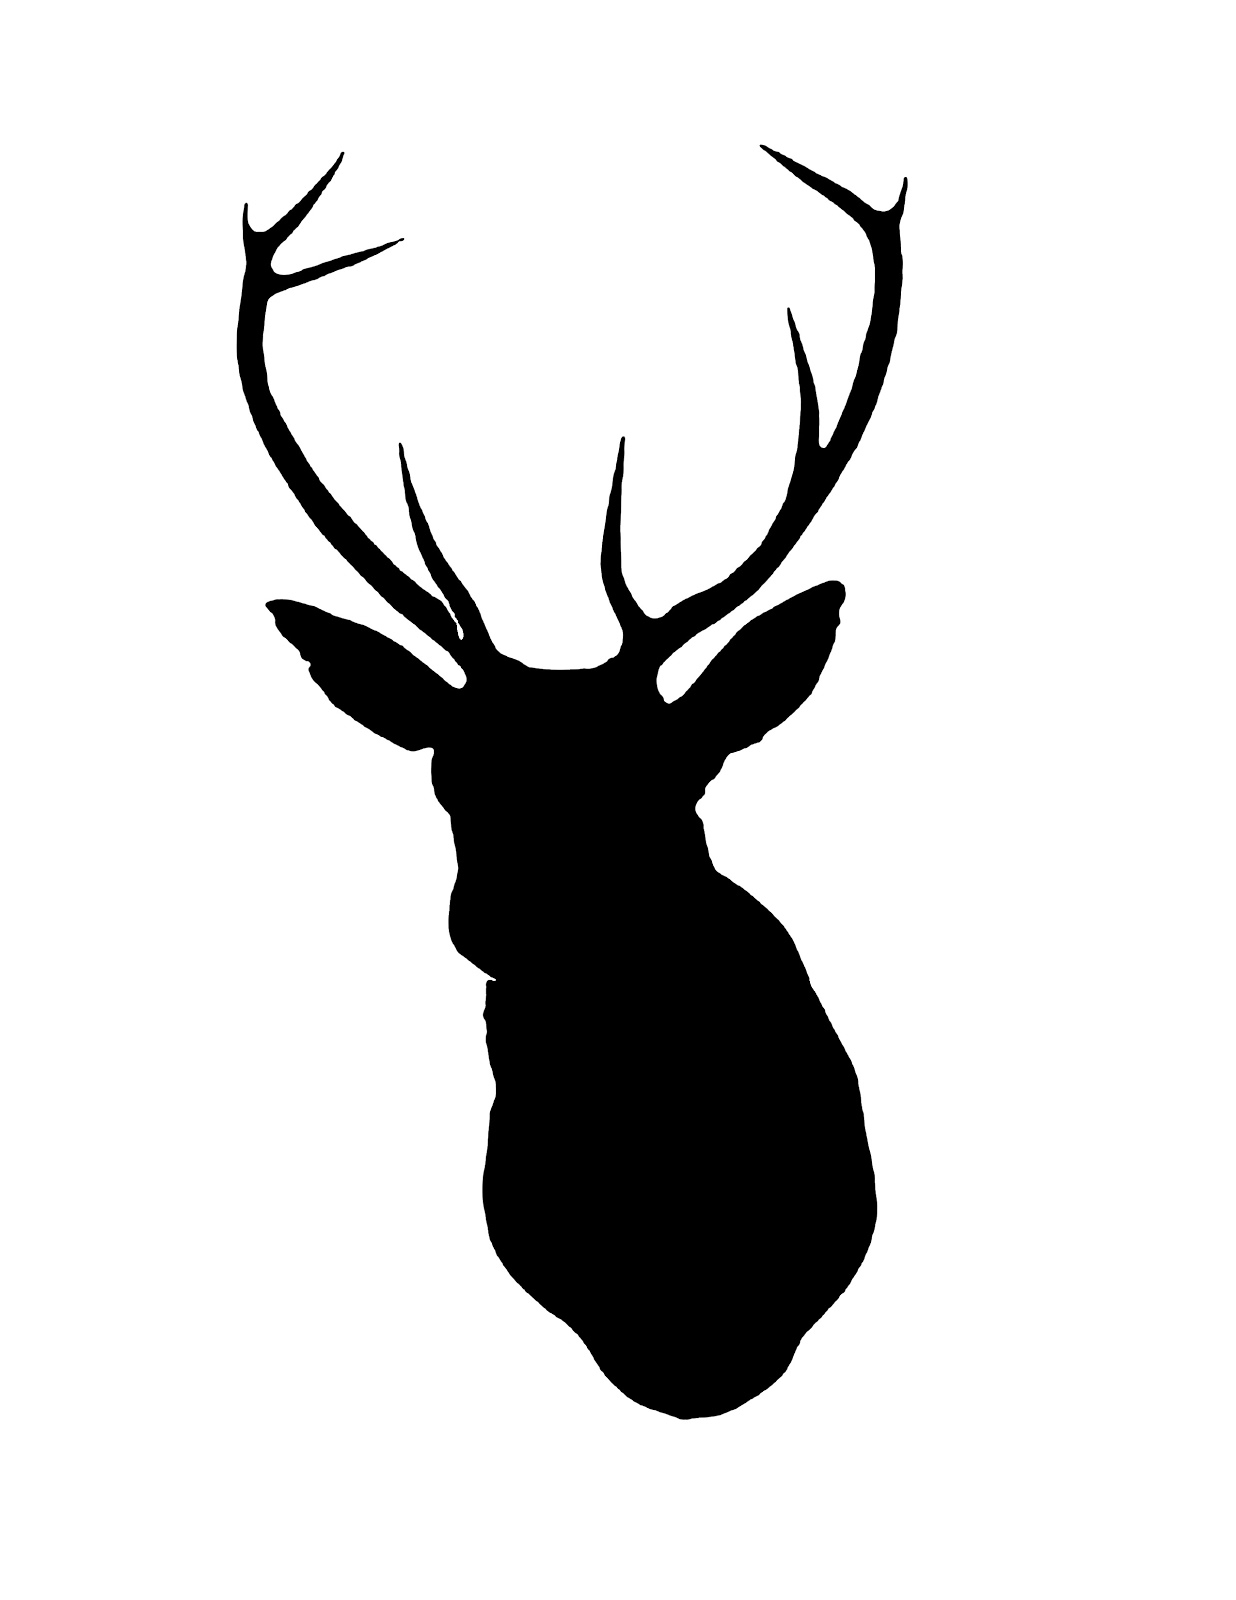 Reindeer Head Silhouette Template at GetDrawings.com | Free for ...